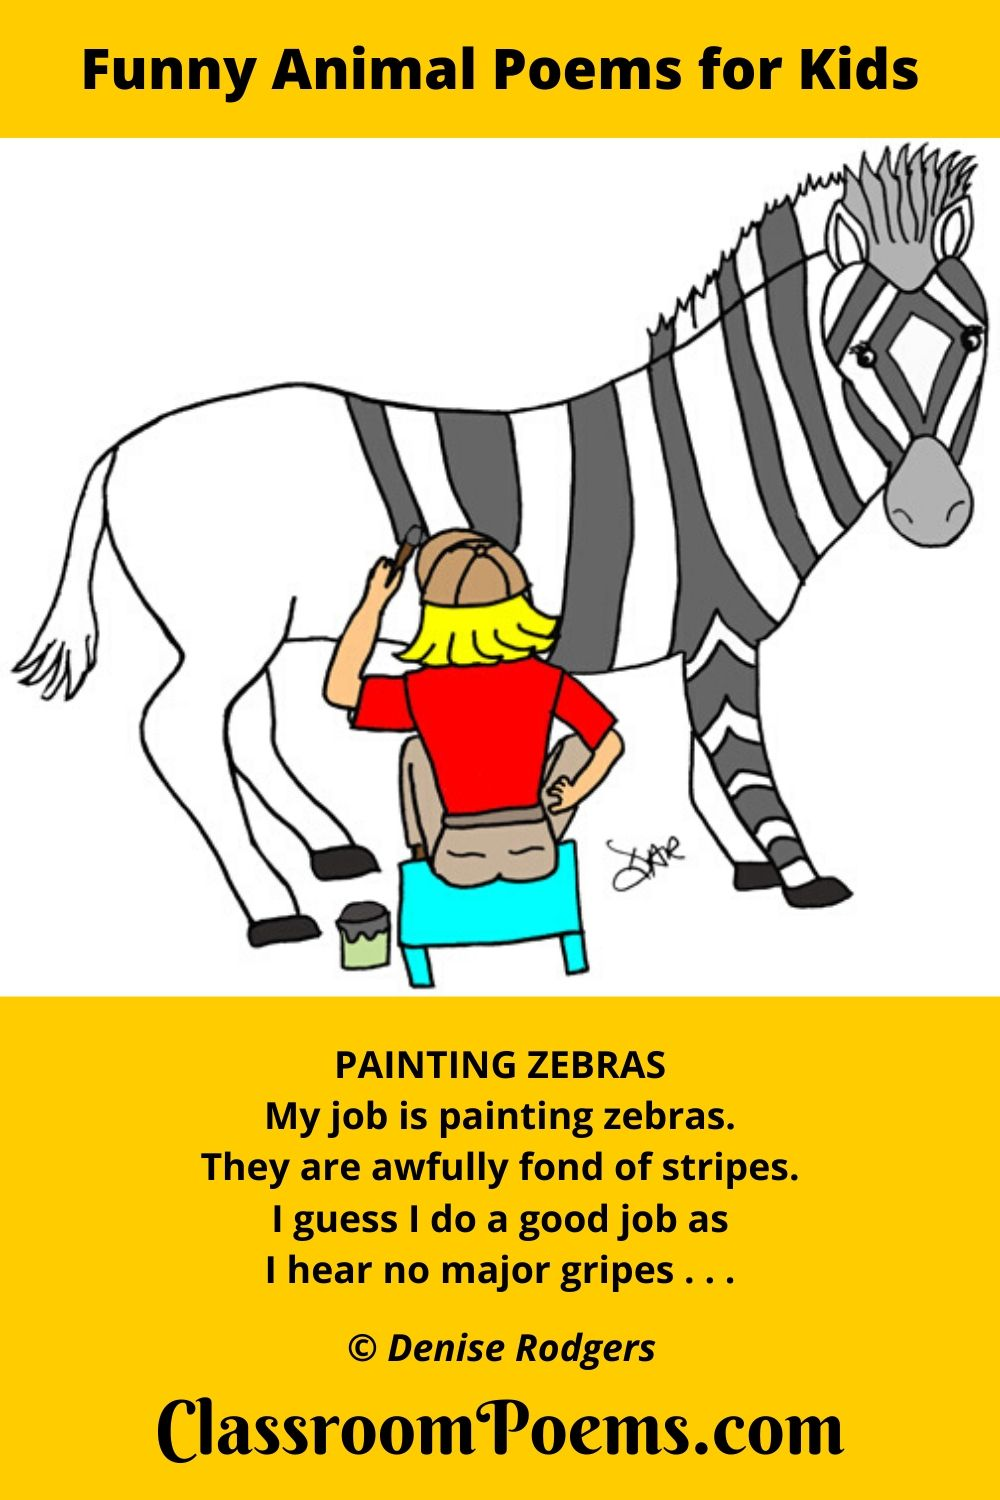 Painting Zebras, a funny animal poem for kids by Denise Rodgers on ClassroomPoems.com.